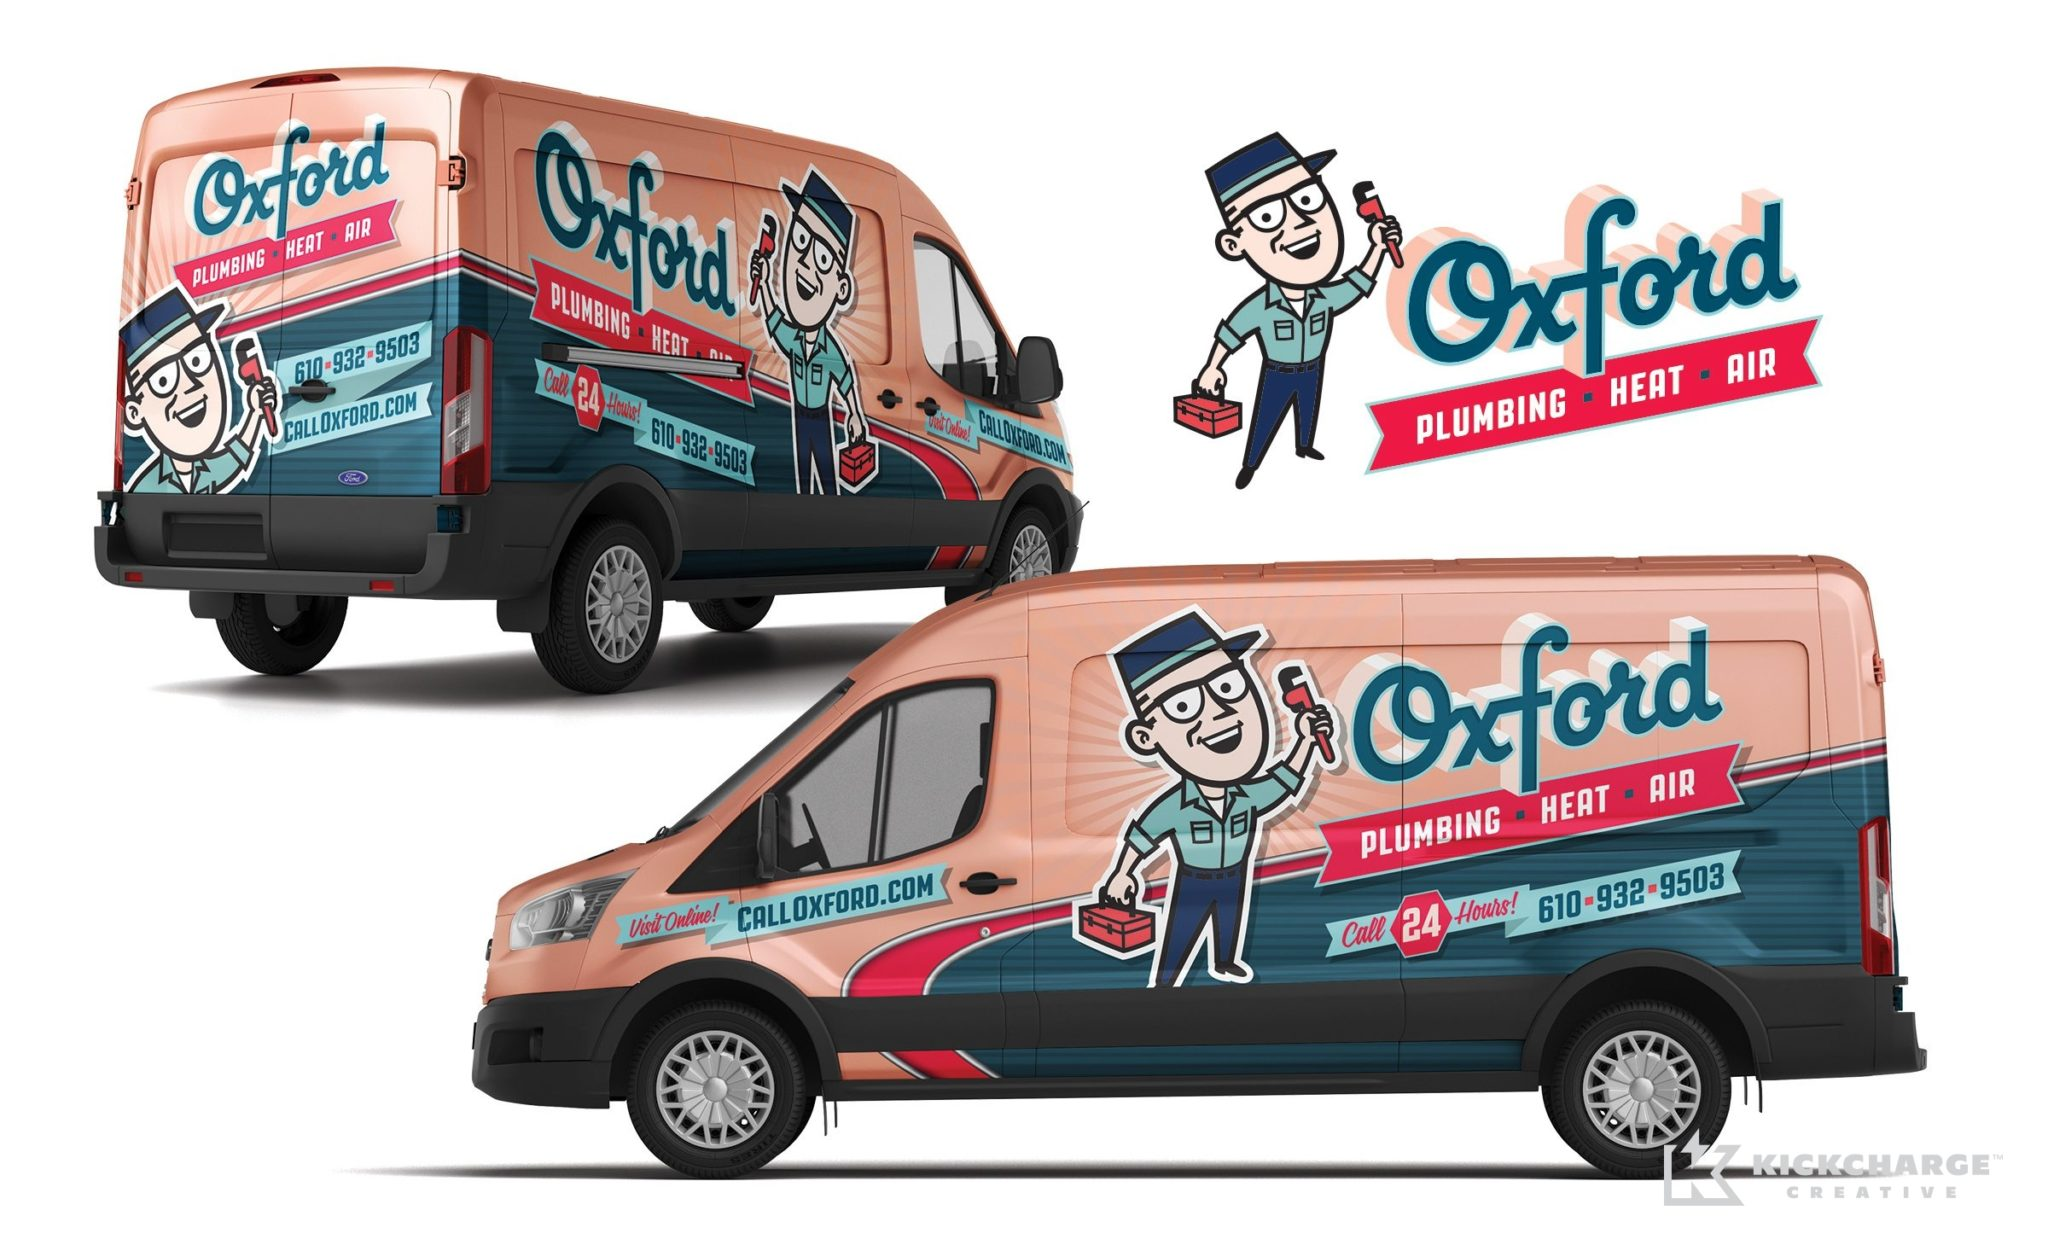 Vehicle wrap design for Oxford Plumbing, Heat & Air.